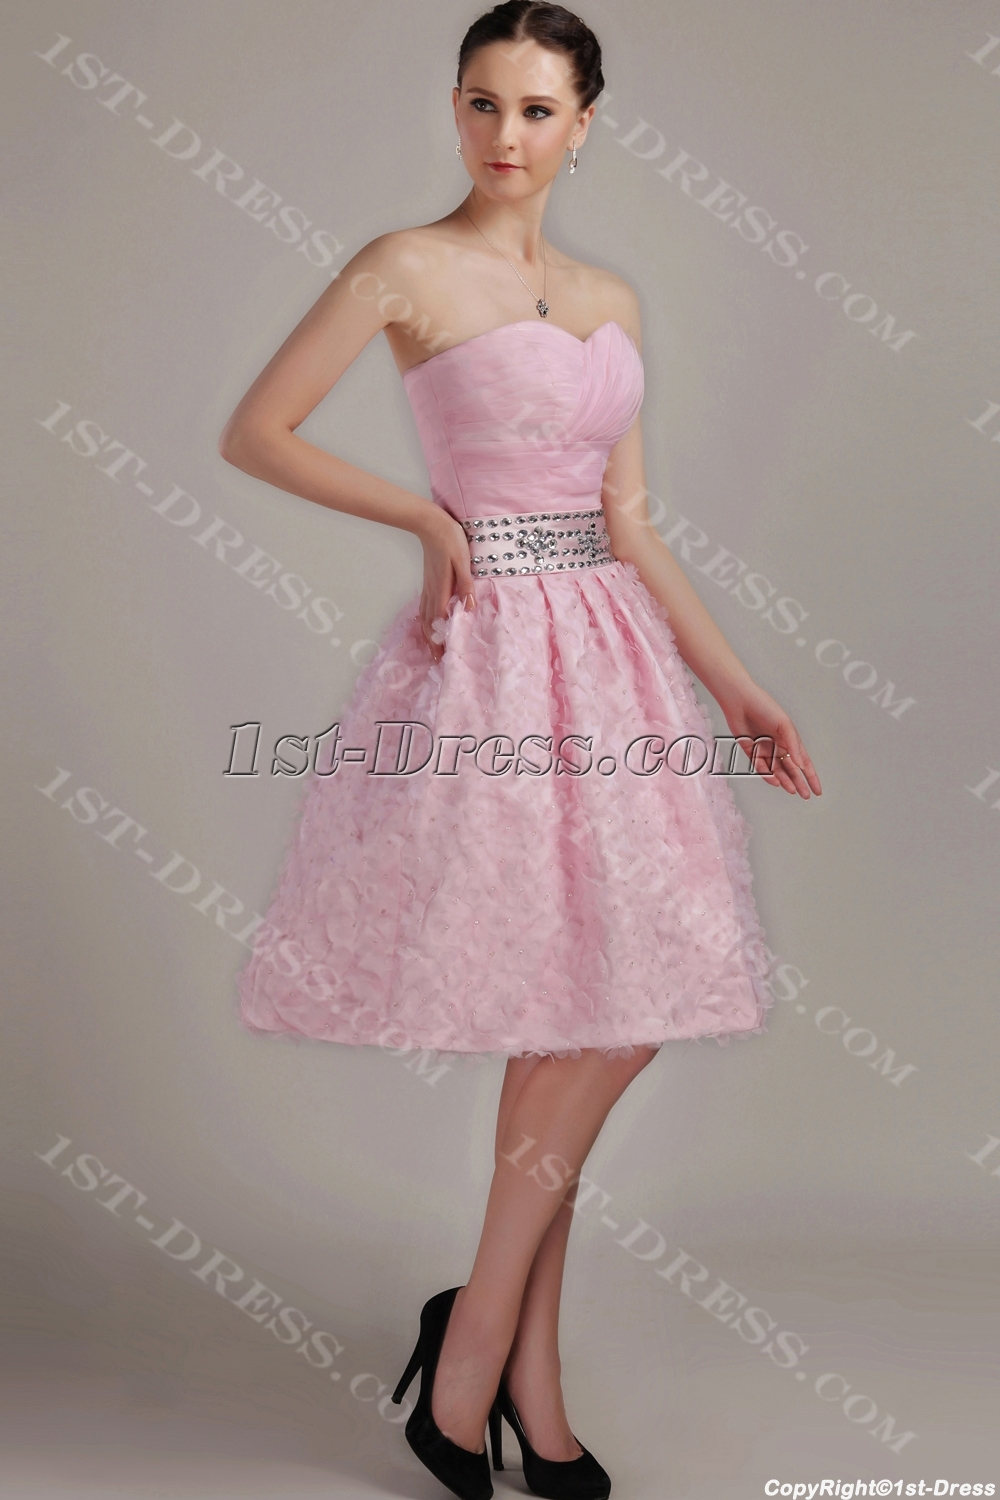 images/201304/big/Pink-Short-Sweet-Quinceanera-Dress-with-Floral-IMG_3168-1054-b-1-1366128795.jpg